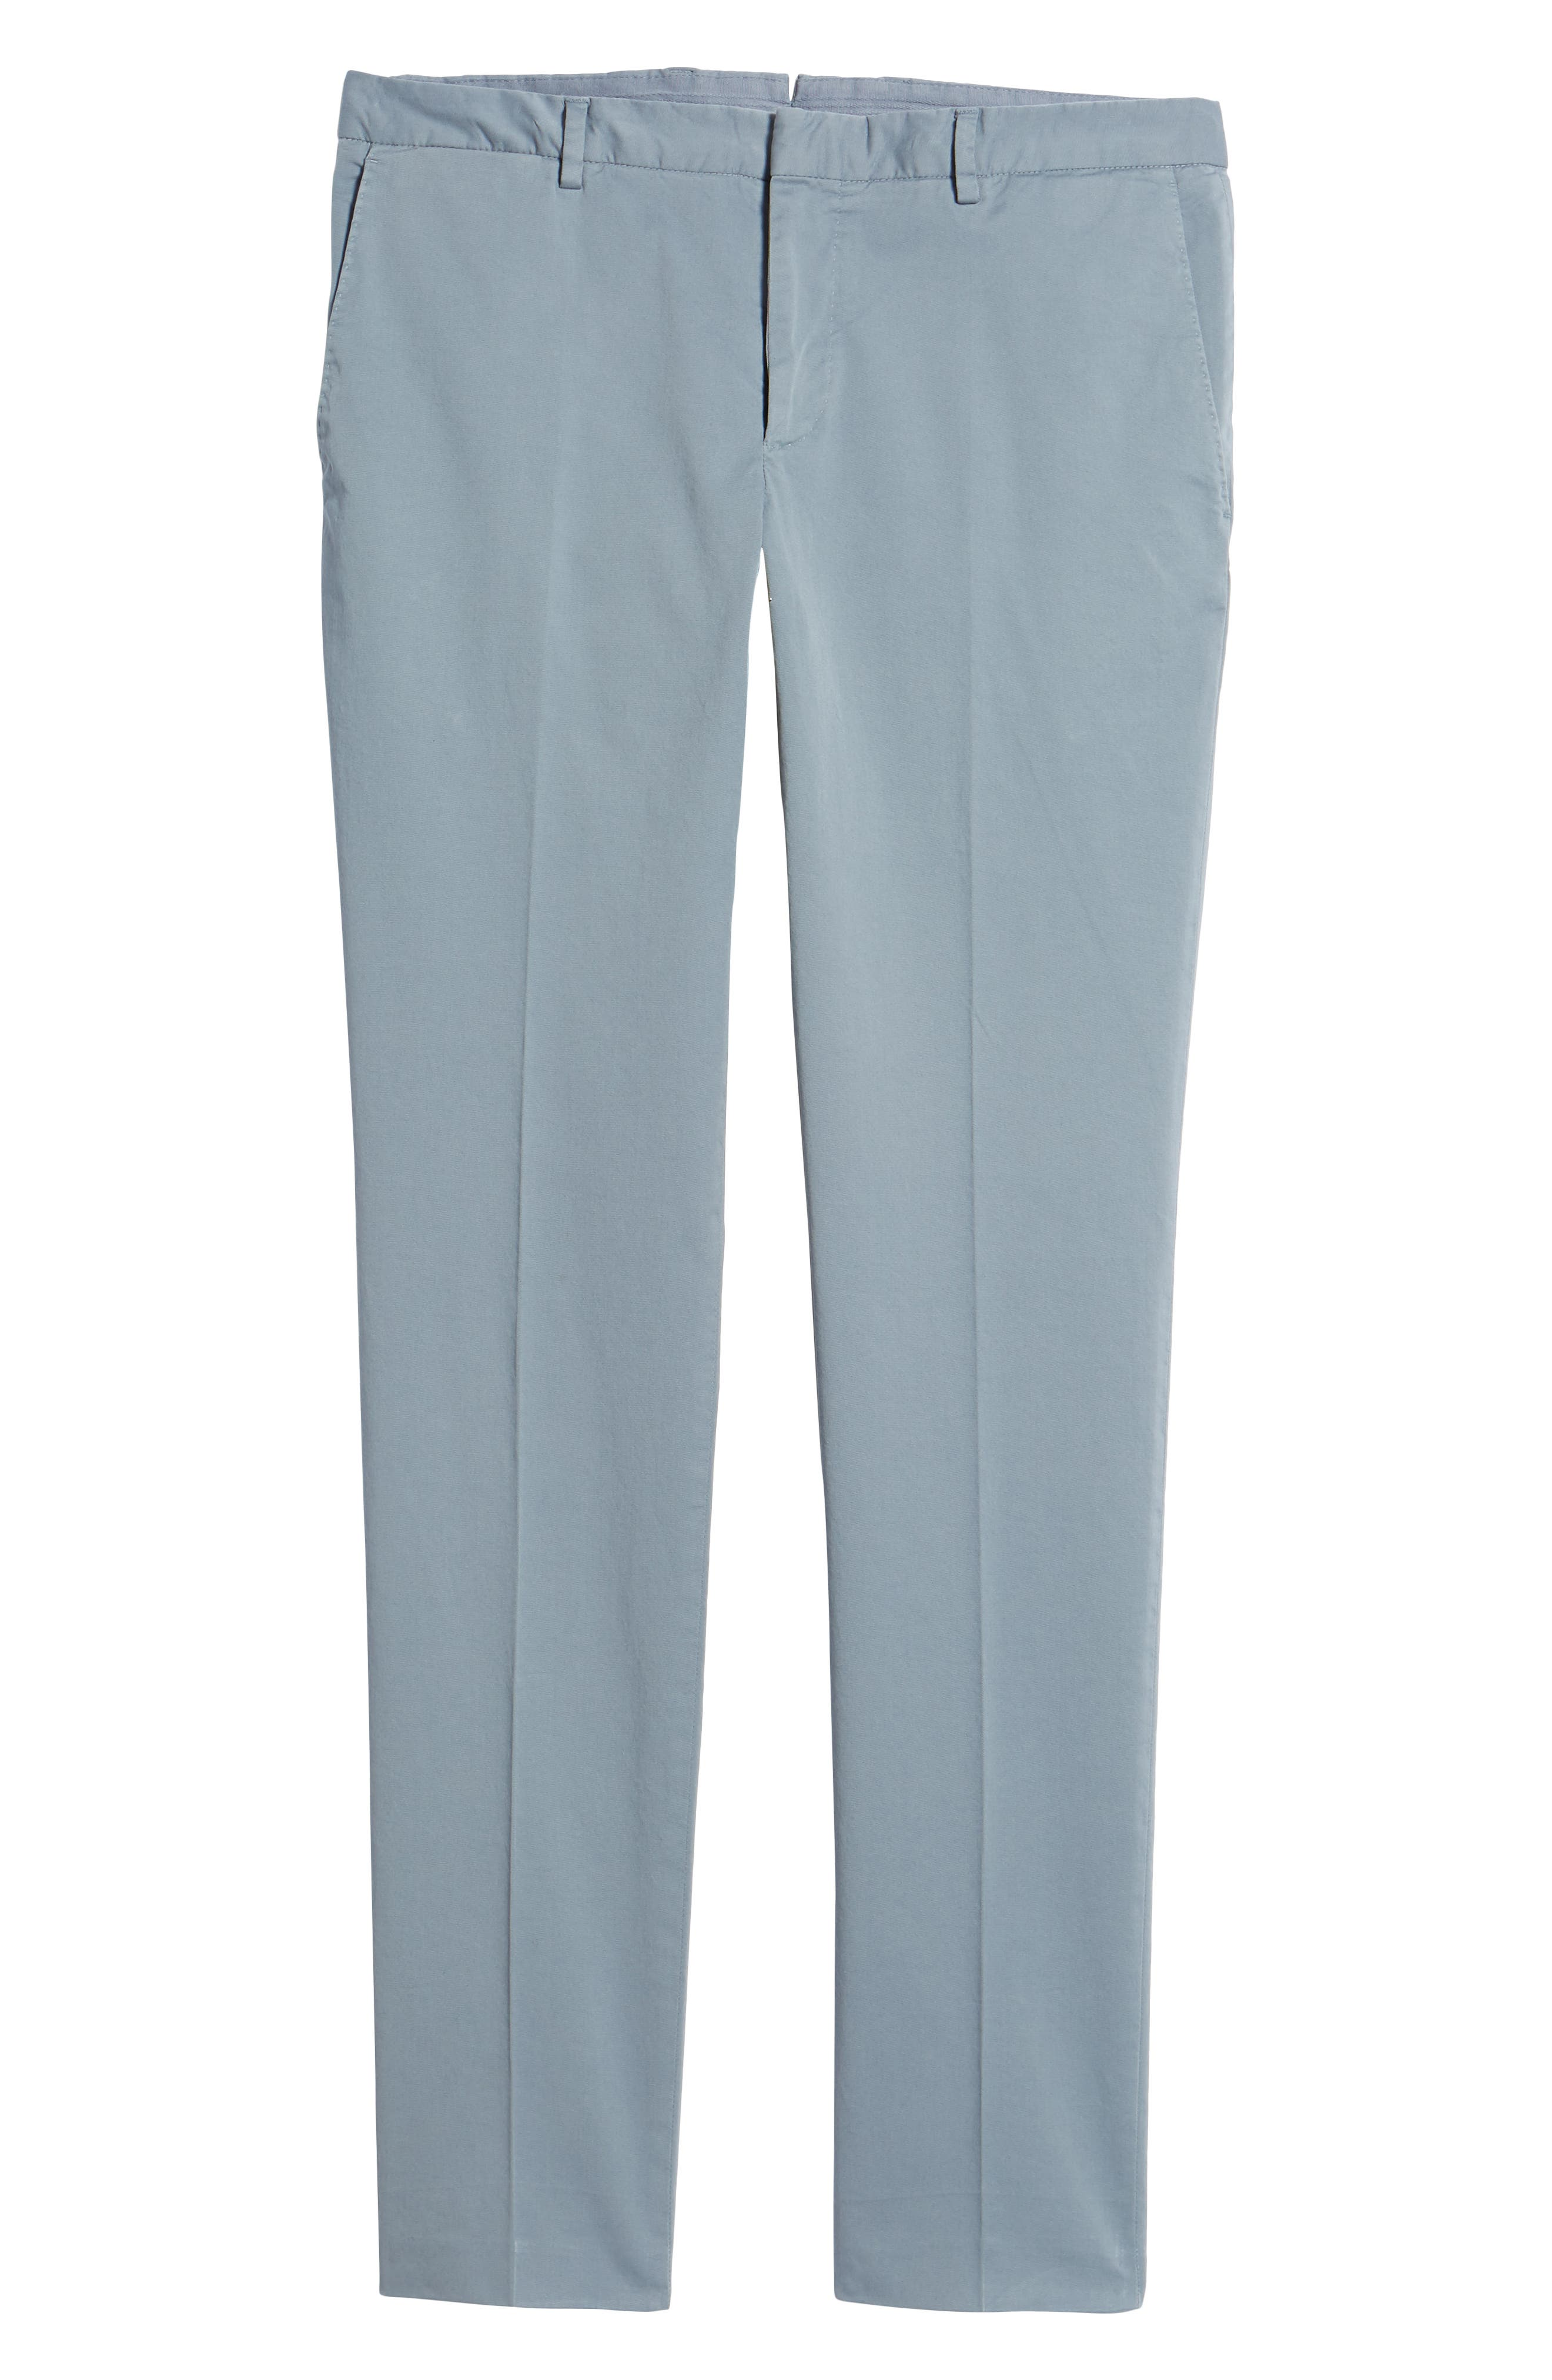 Barlow-D Flat Front Stretch Solid Cotton Trousers,                             Alternate thumbnail 6, color,                             Blue